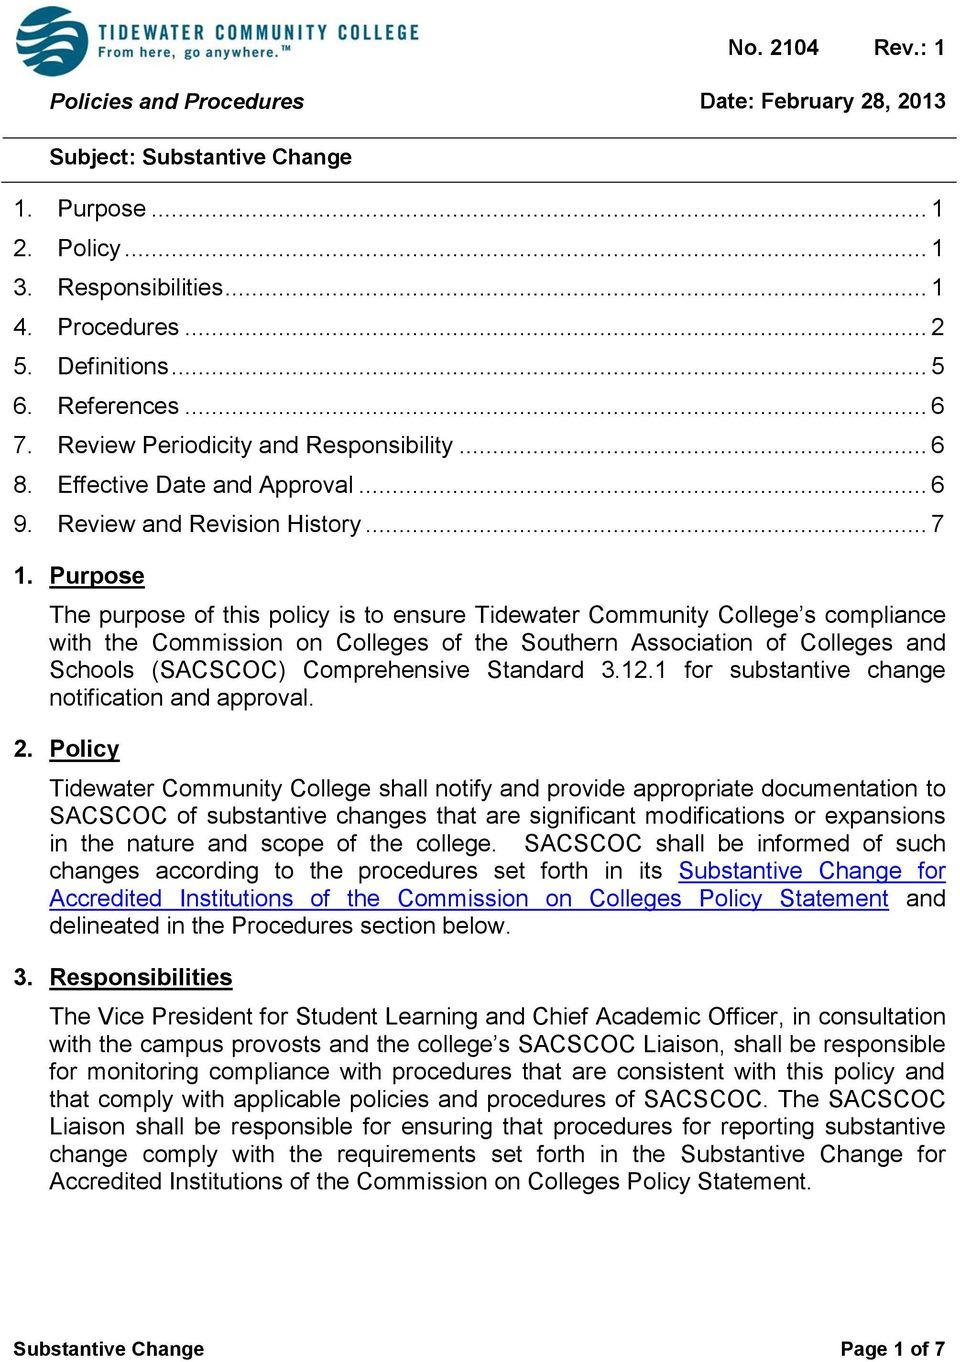 Purpose The purpose of this policy is to ensure Tidewater Community College s compliance with the Commission on Colleges of the Southern Association of Colleges and Schools (SACSCOC) Comprehensive